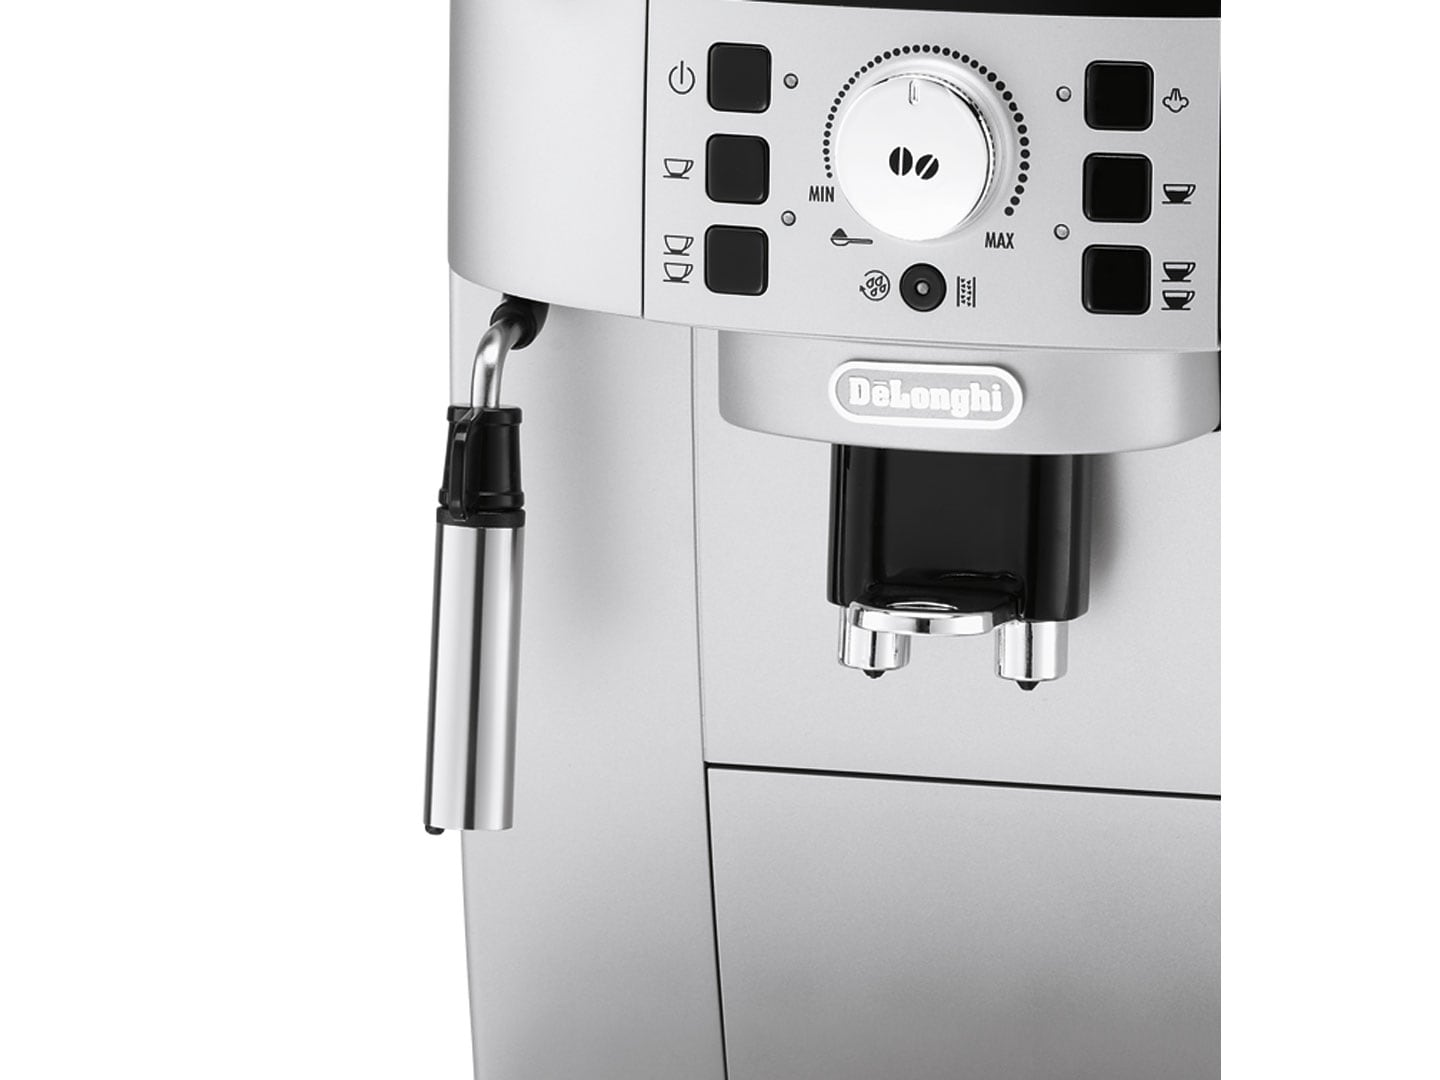 Magnifica S ECAM22110SB buy bean to cup coffee machine